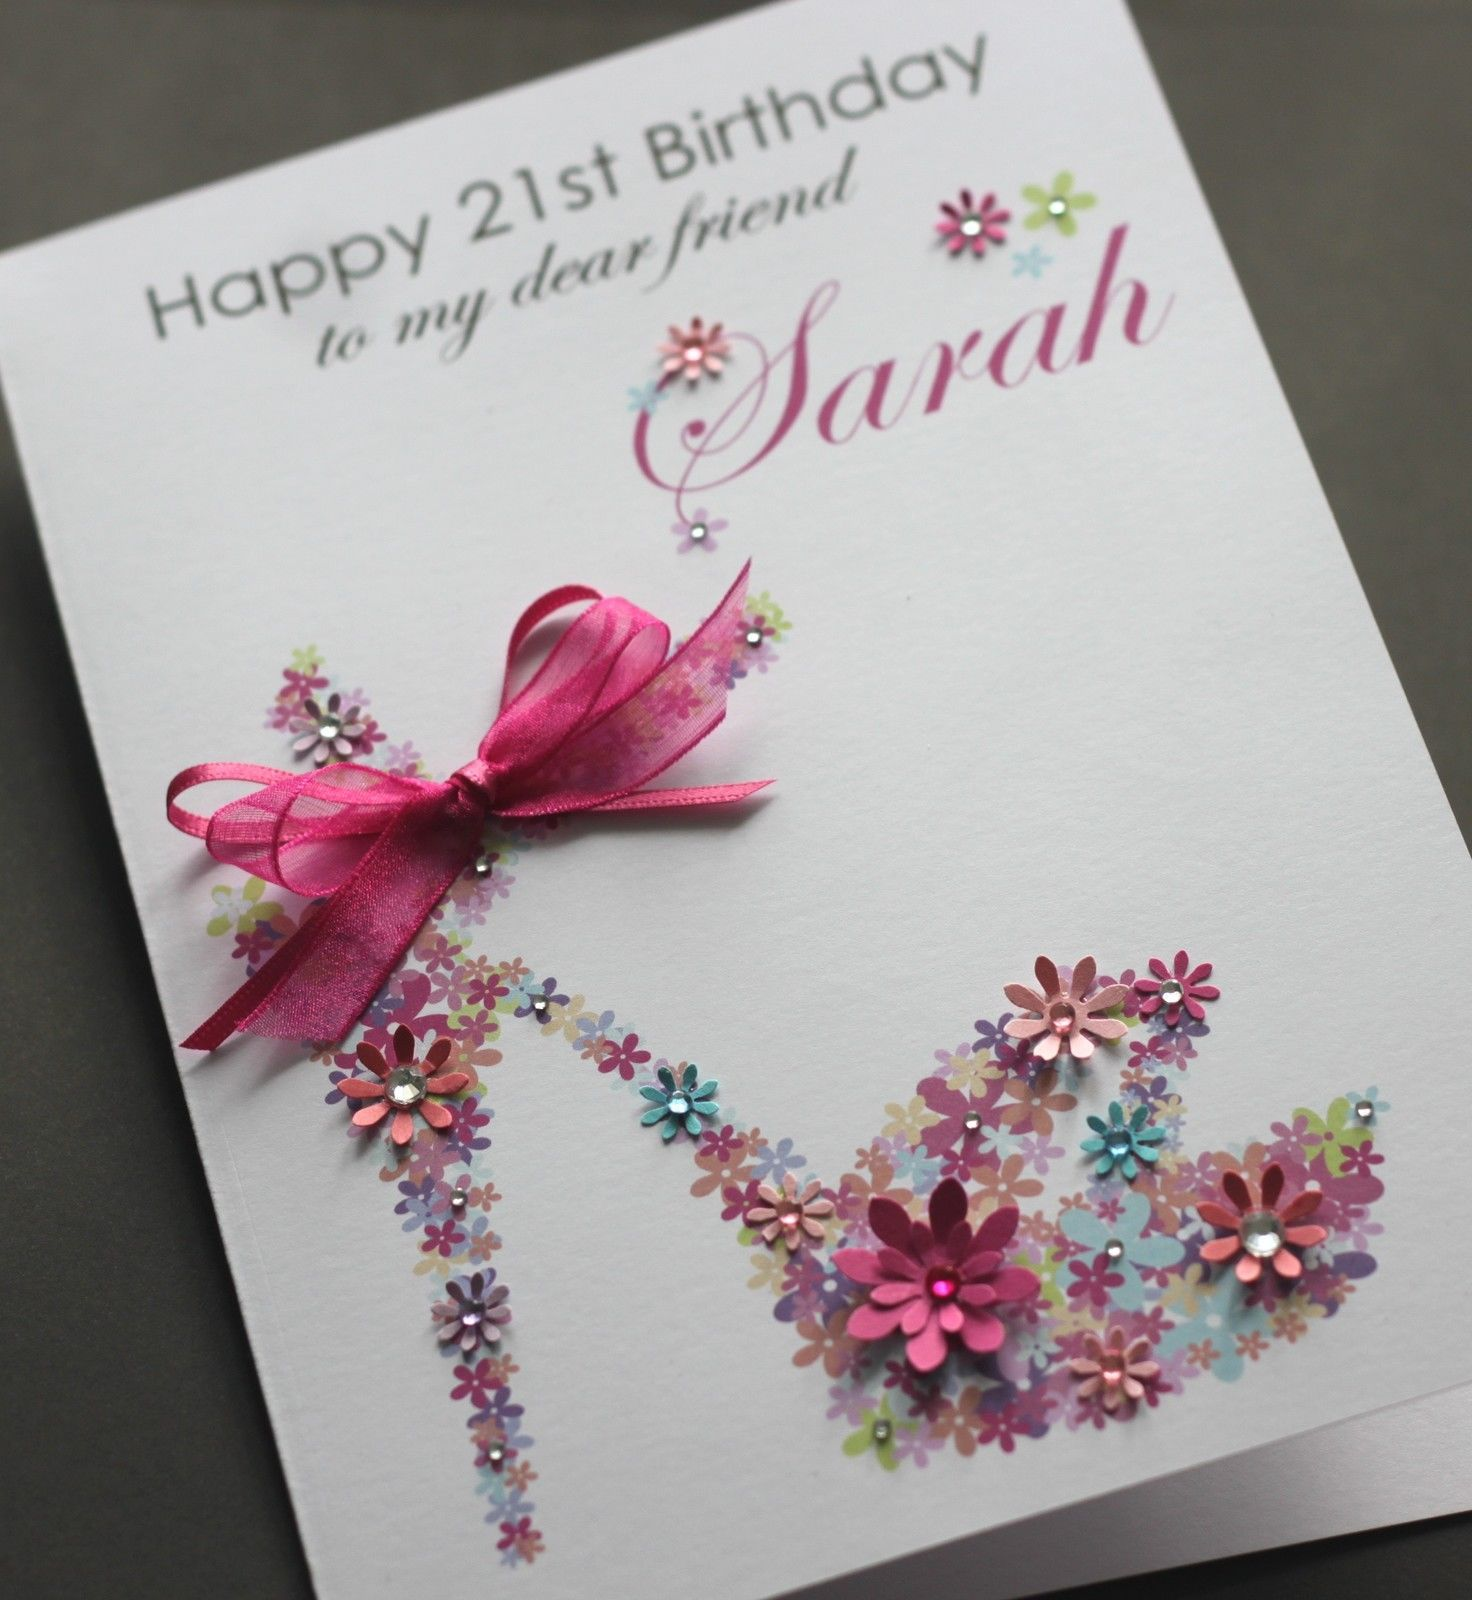 41 handmade birthday card ideas with images and steps floral a creative cool selection of homemade and handmade birthday card ideas birthday card ideas bookmarktalkfo